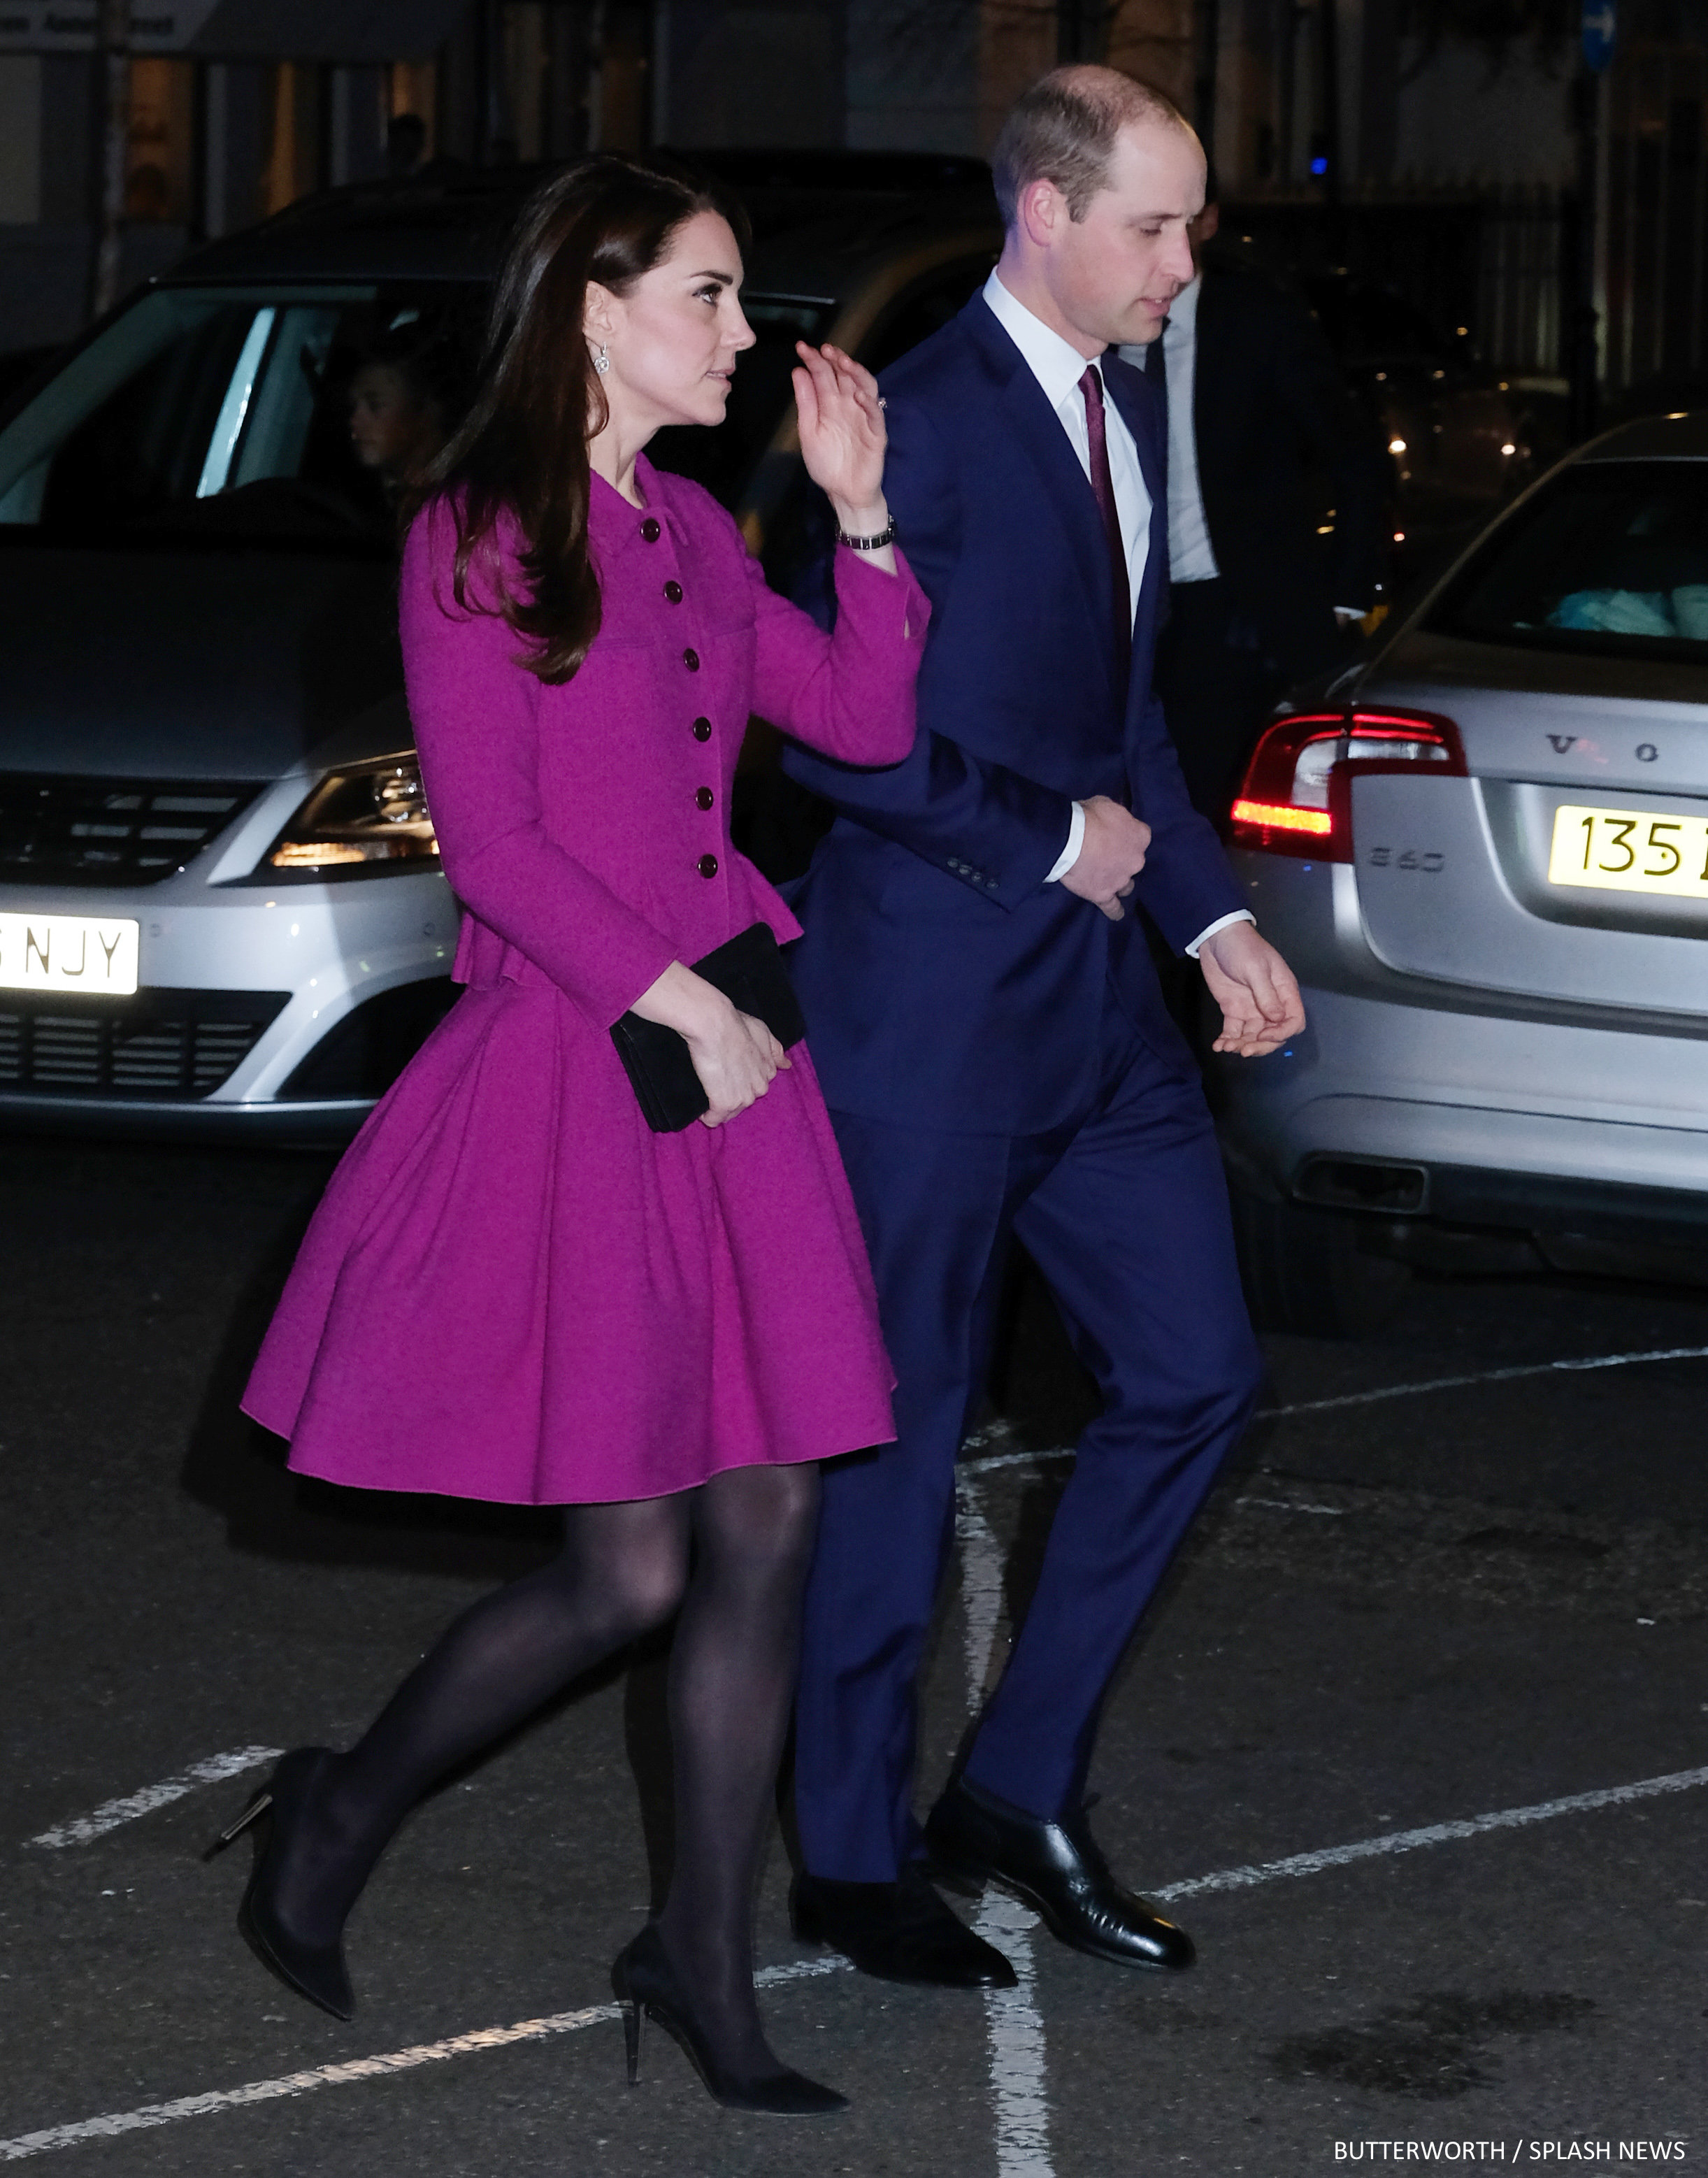 The Duke and Duchess of Cambridge arrive to a charity gala in central London. The Duchess of Cambridge wore a bright purple evening dress as she made her way into the Guild of Health Writer's Conference at Chandos House.